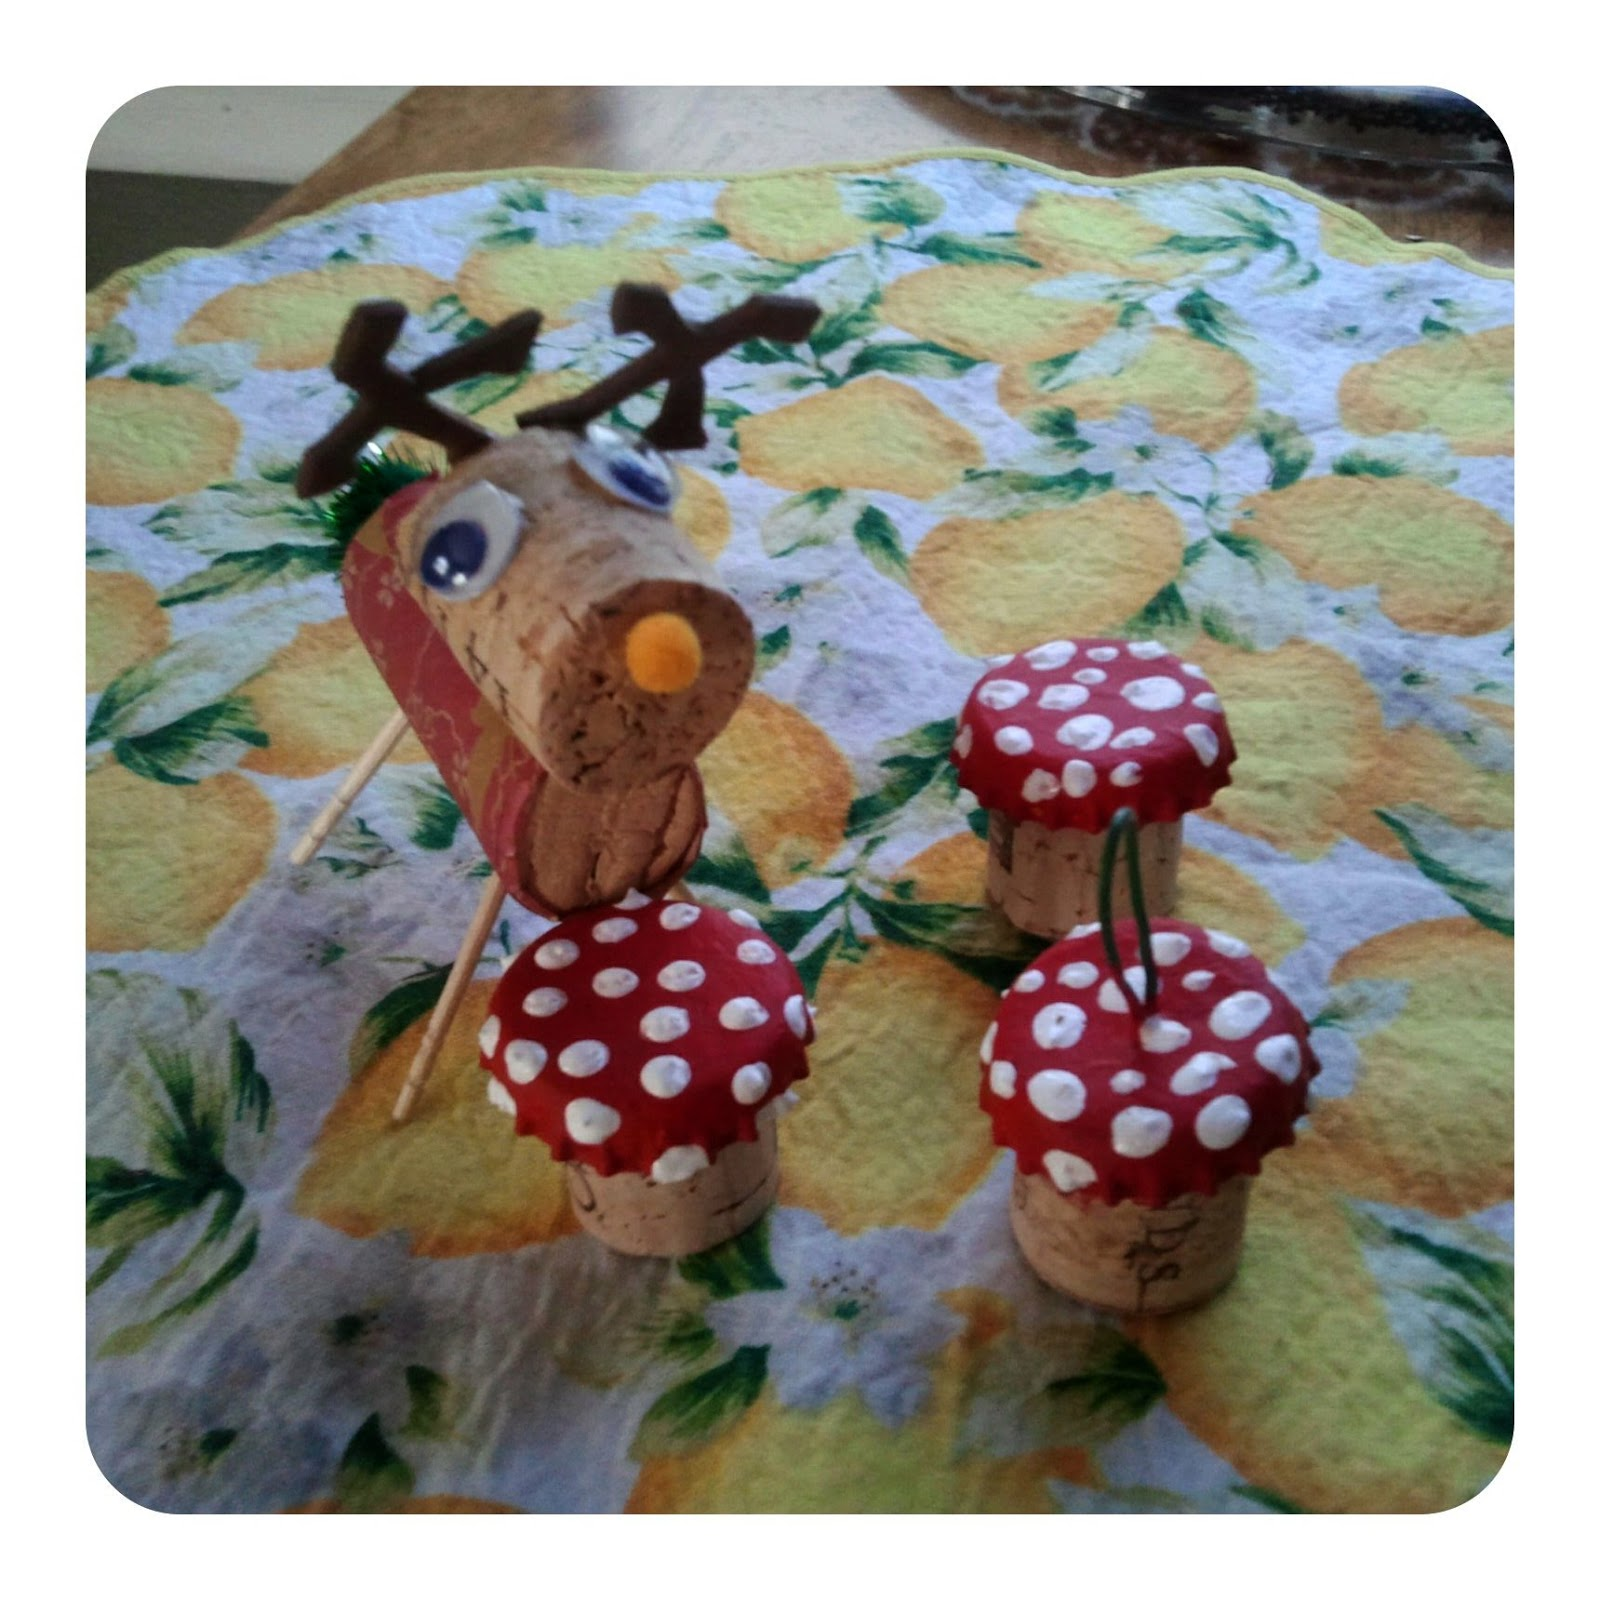 Ornaments made from wine corks - Reindeer And Amanita Mushroom Made From Wine Corks